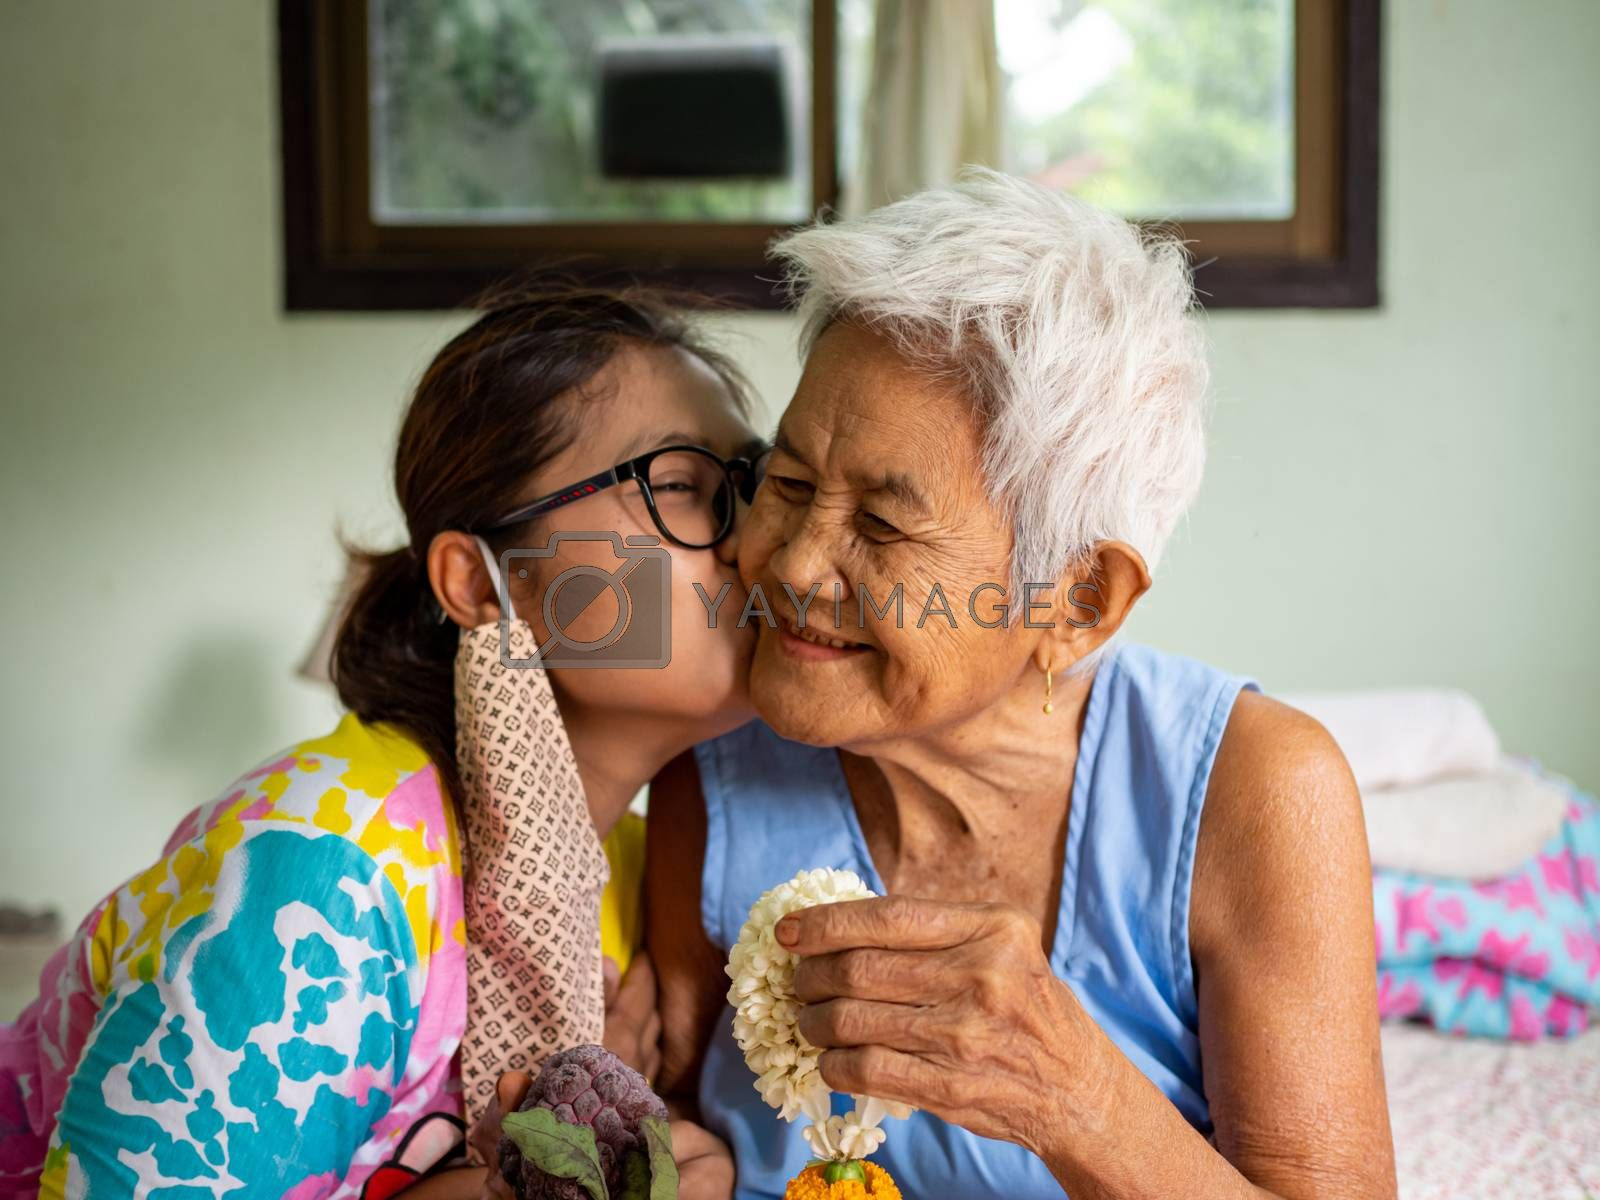 The image of the woman on the cheek grandmother. real bodies concept.